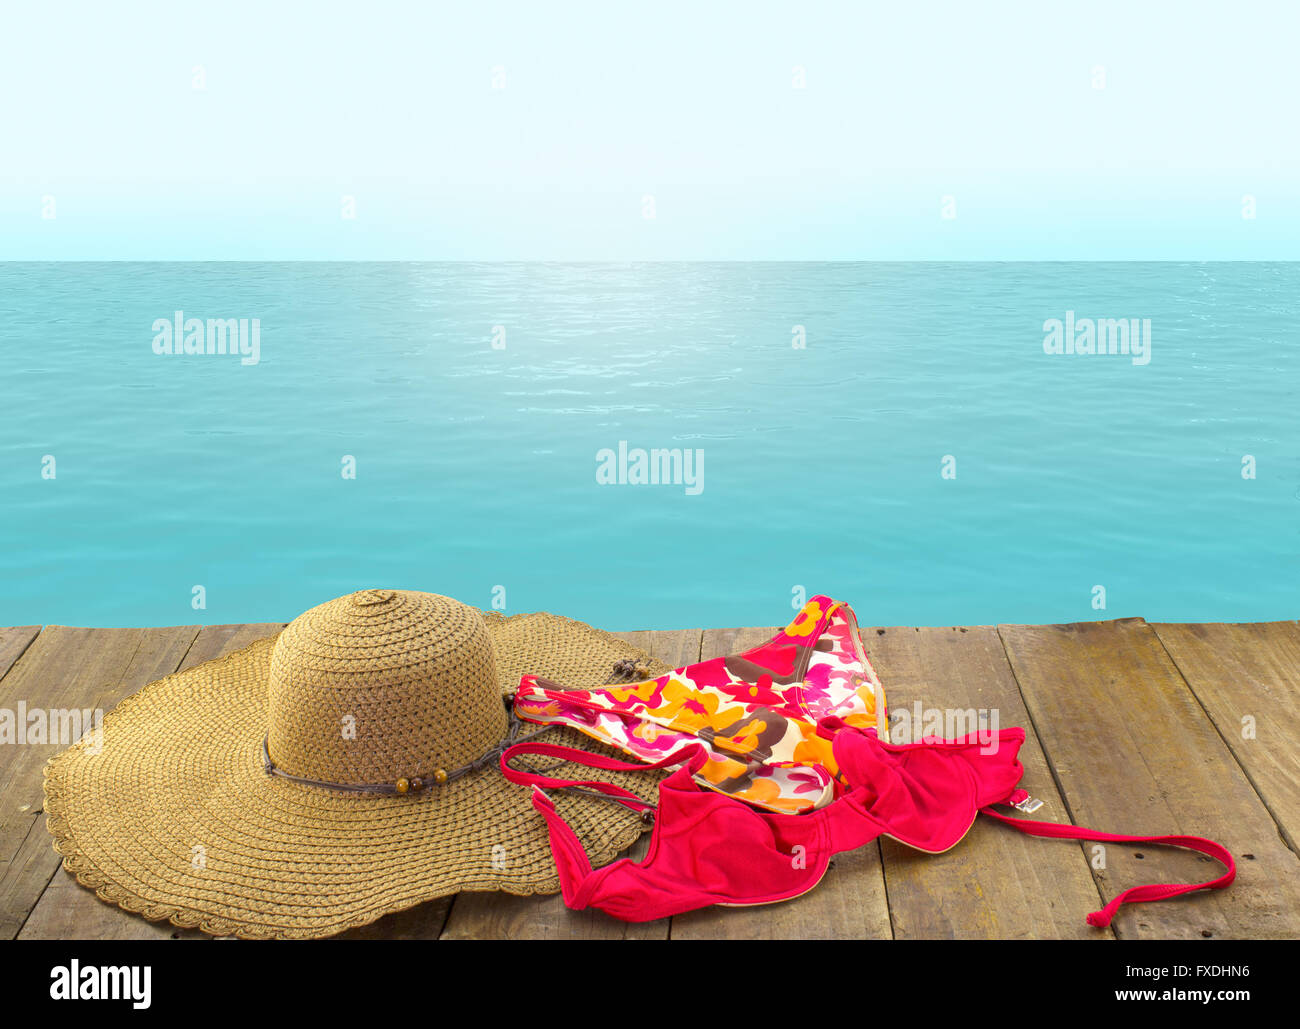 Background with blue ocean, sky and rustic perspective wood pier with bikini and sunhat. - Stock Image